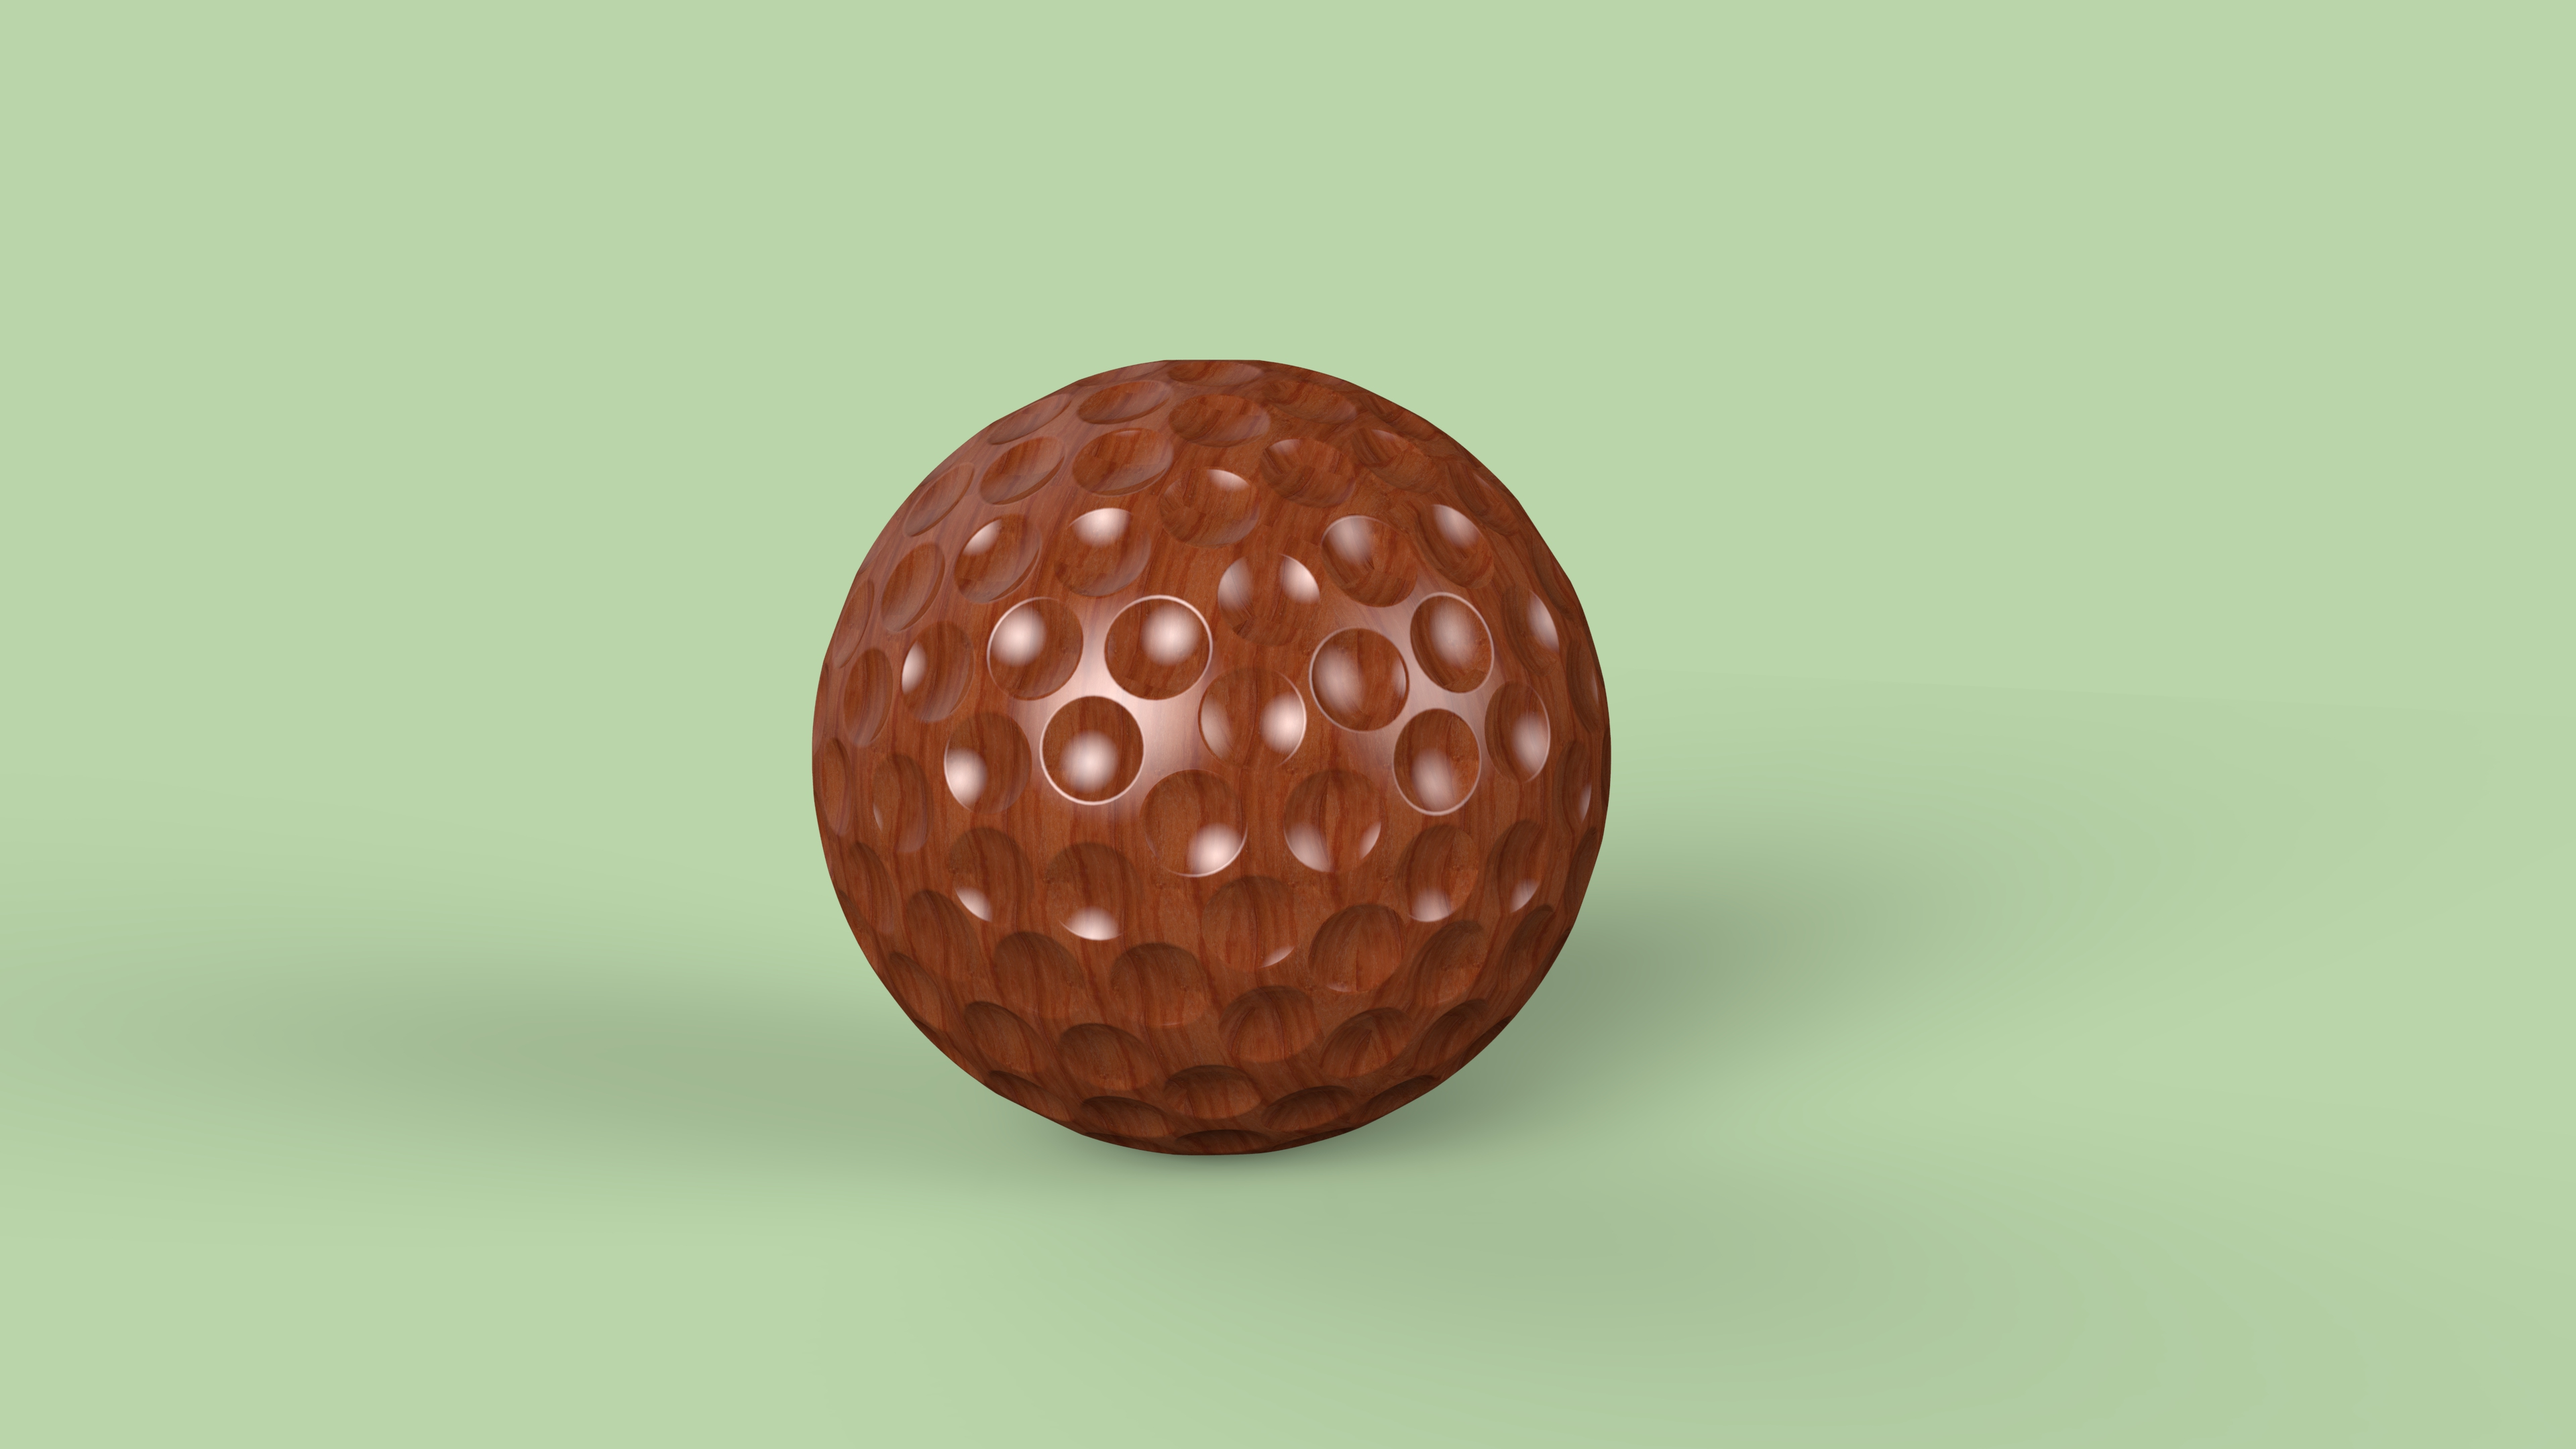 4K_wooden_golf_ball.jpg